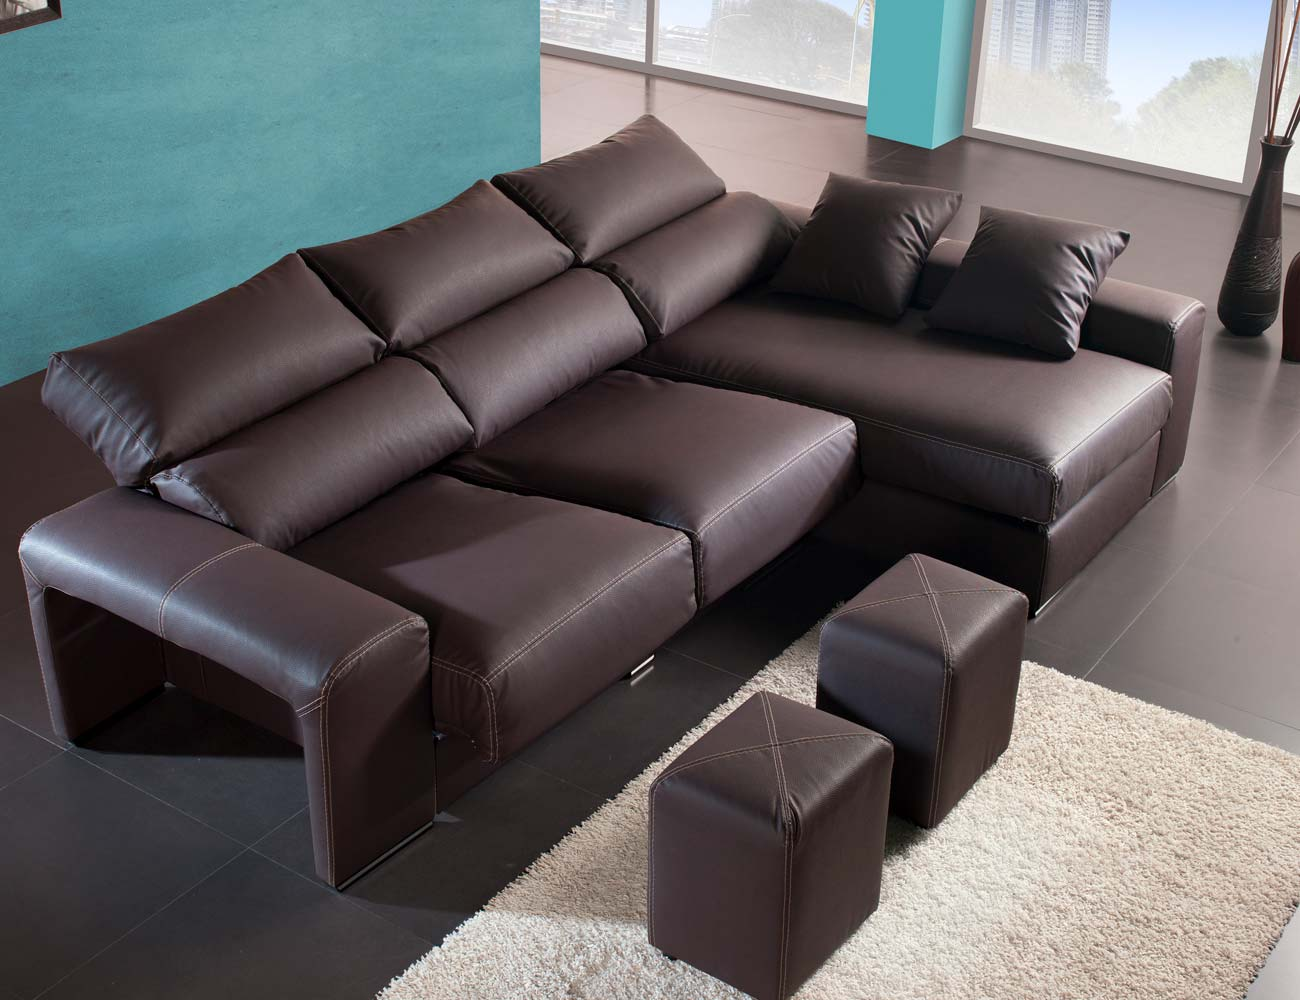 Sofa chaiselongue moderno polipiel chocolate poufs taburetes67